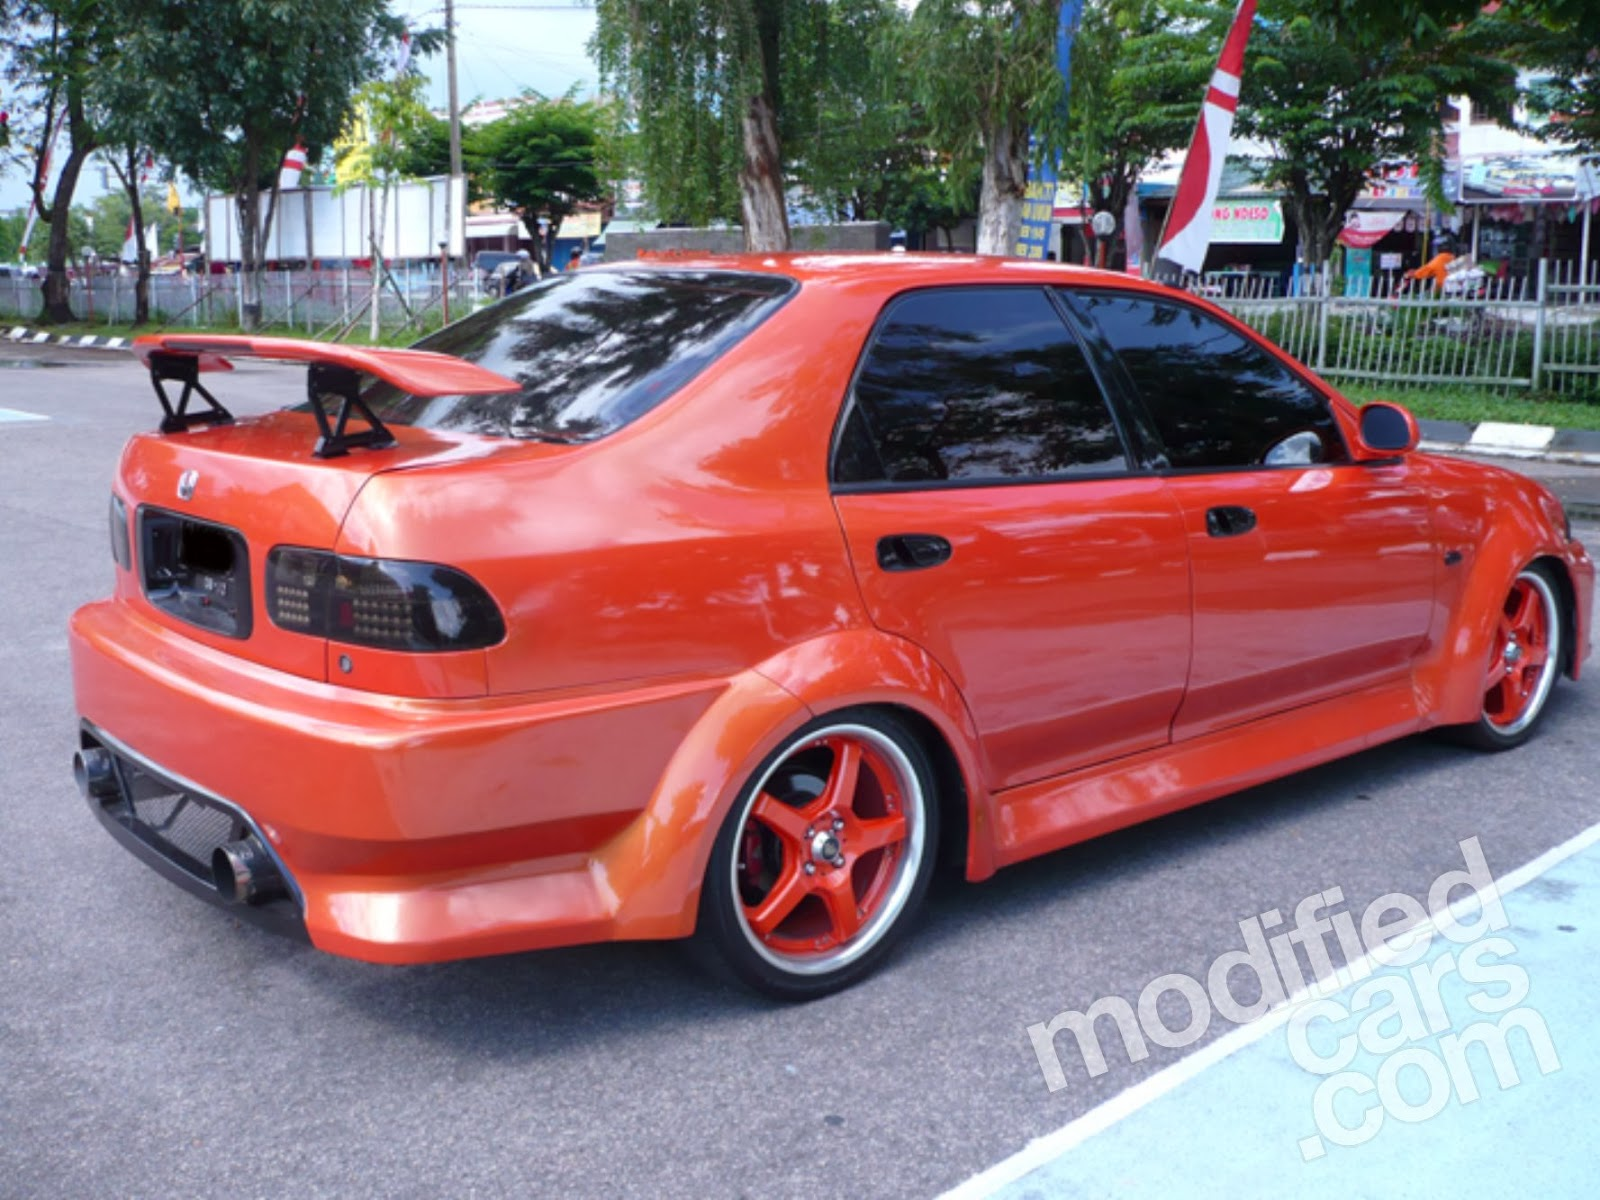 Honda Civic Genio Modifikasi Super Sport Tabloid Ototrend